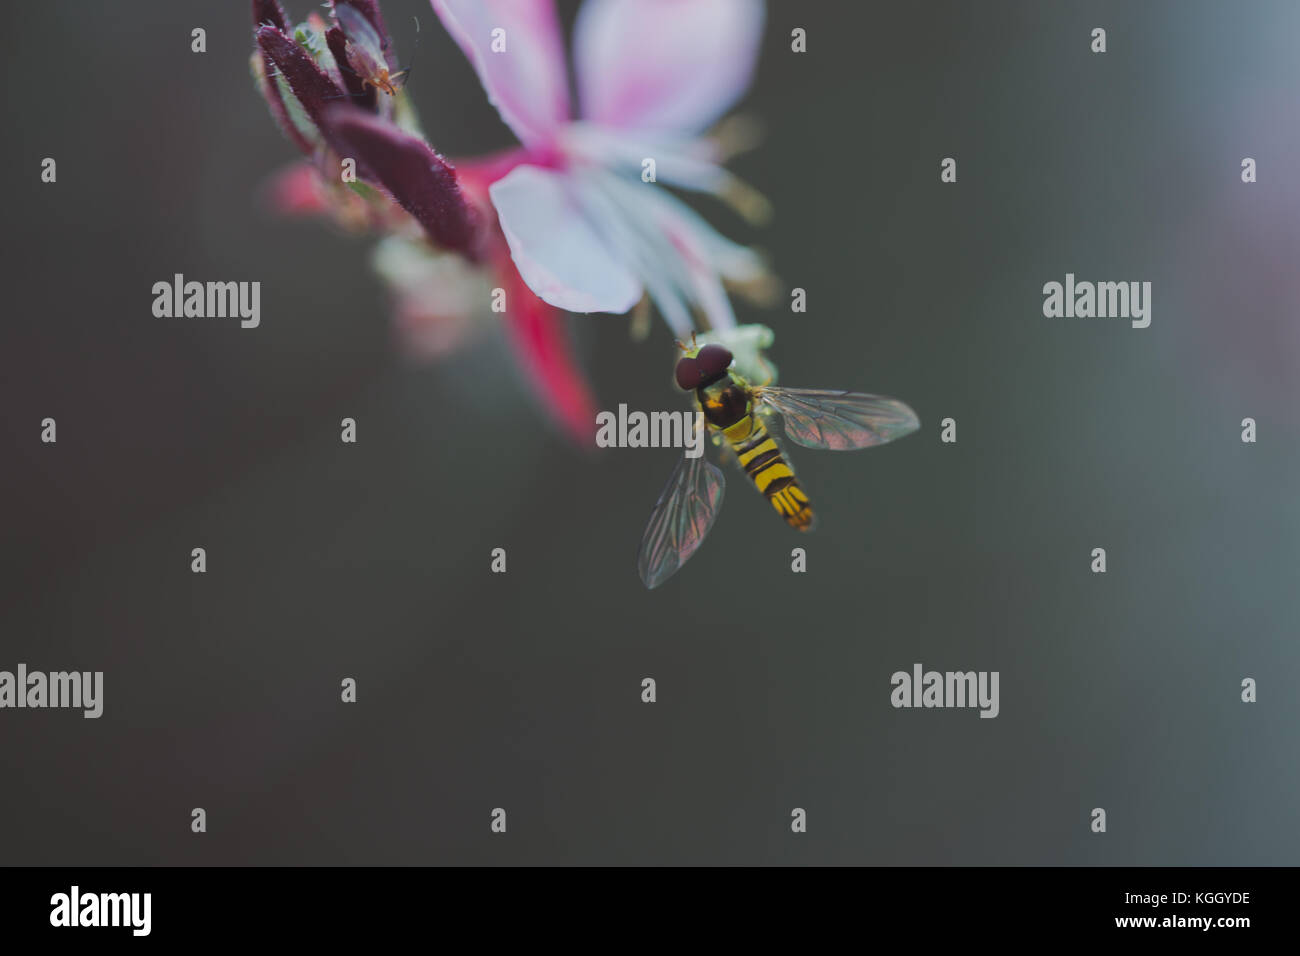 bee on colorful flower - Stock Image